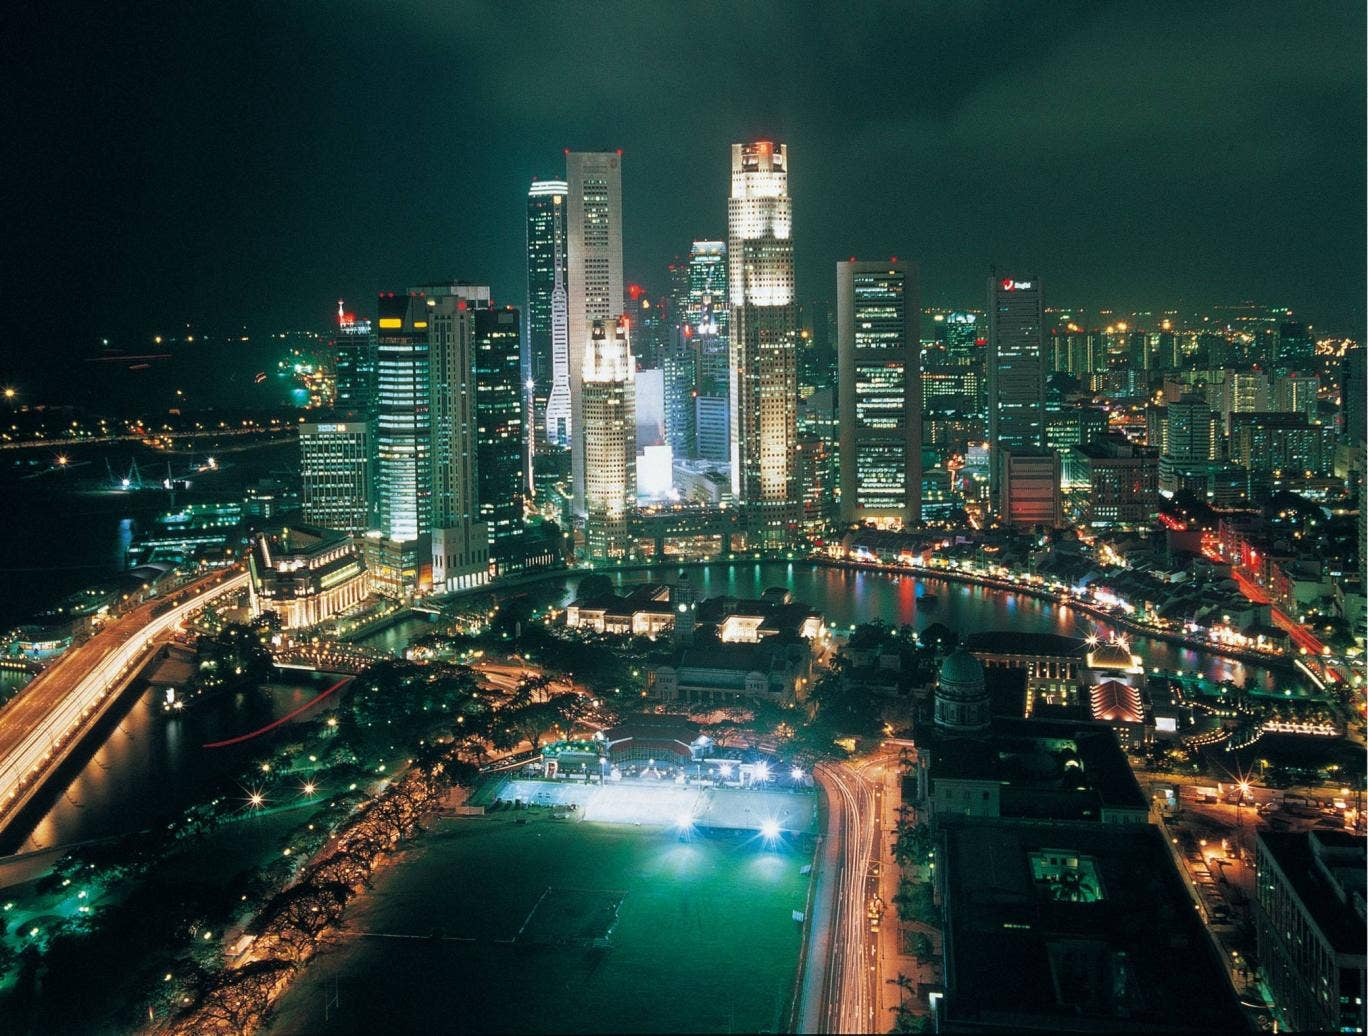 City limits: Singapore is an example of  top-down urban planning that actually worked